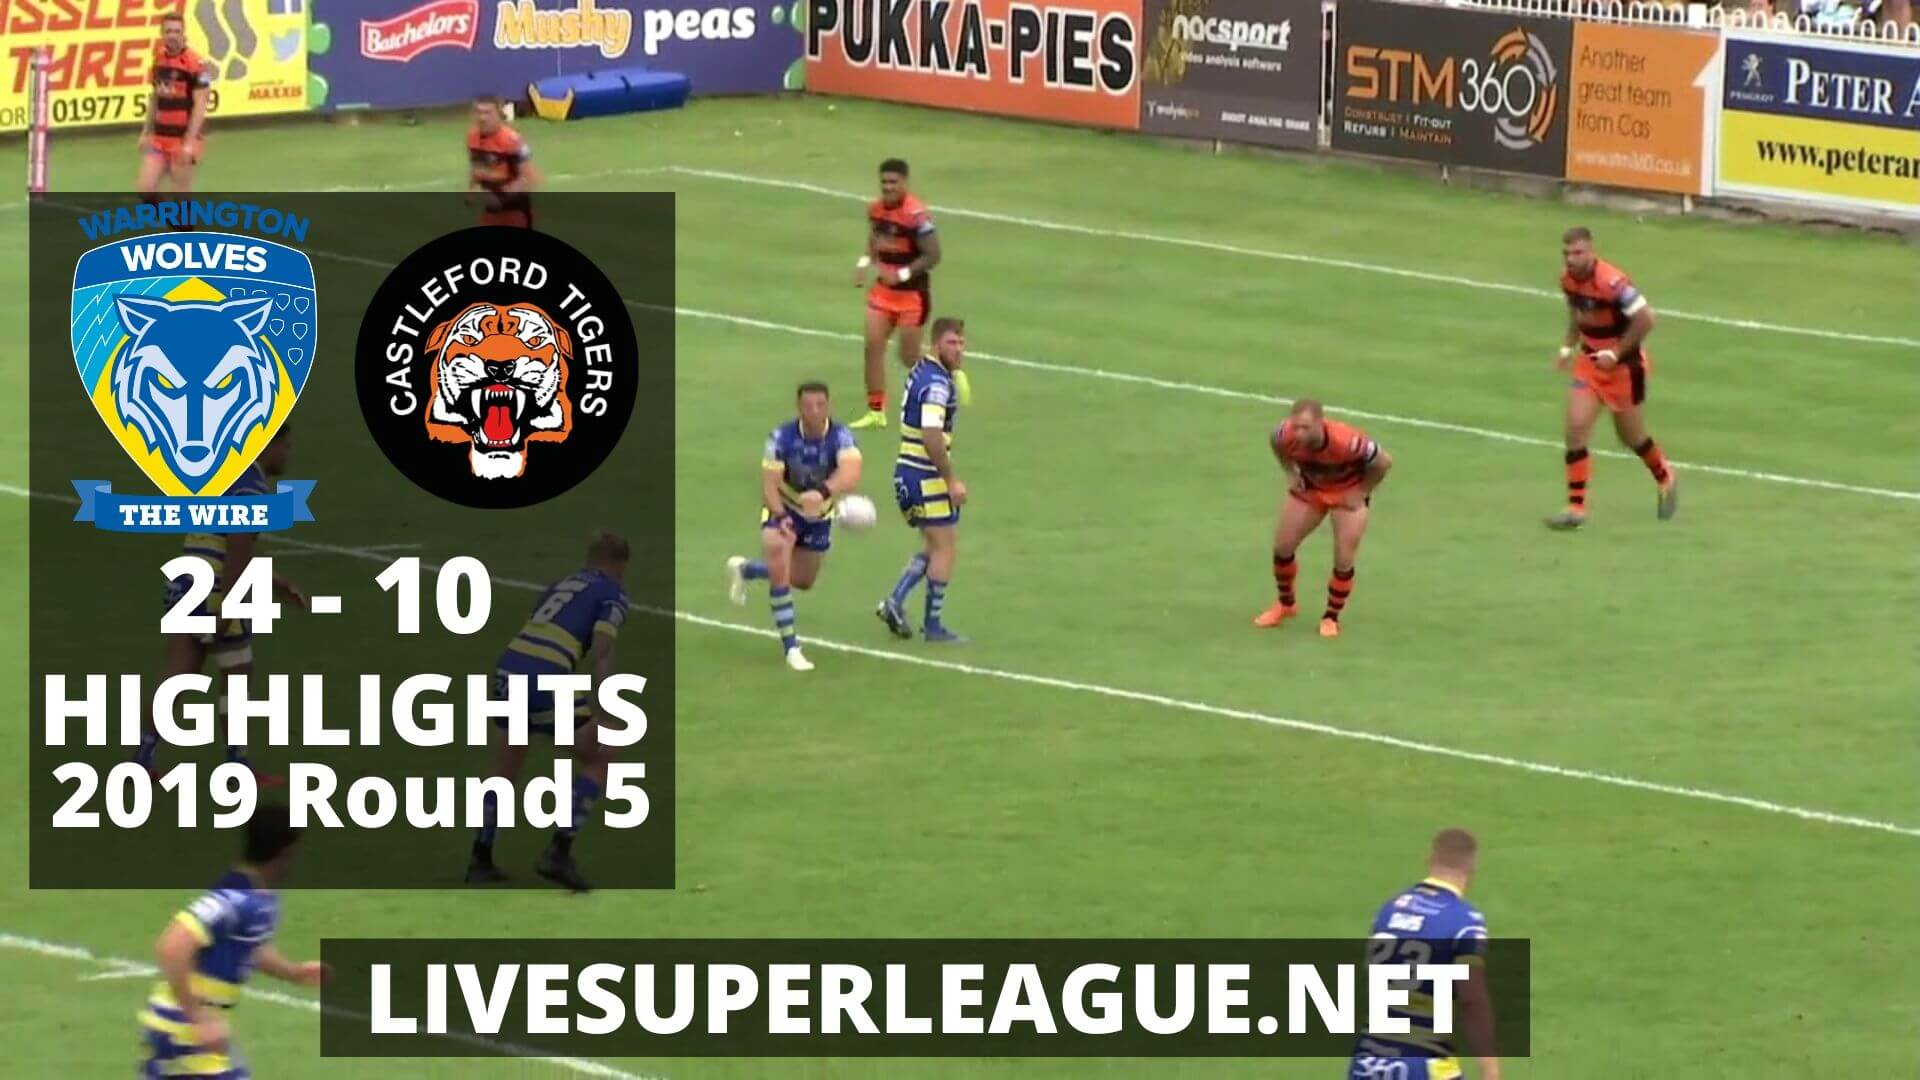 Warrington Wolves Vs Castleford Tigers Highlights 2019 Round 5